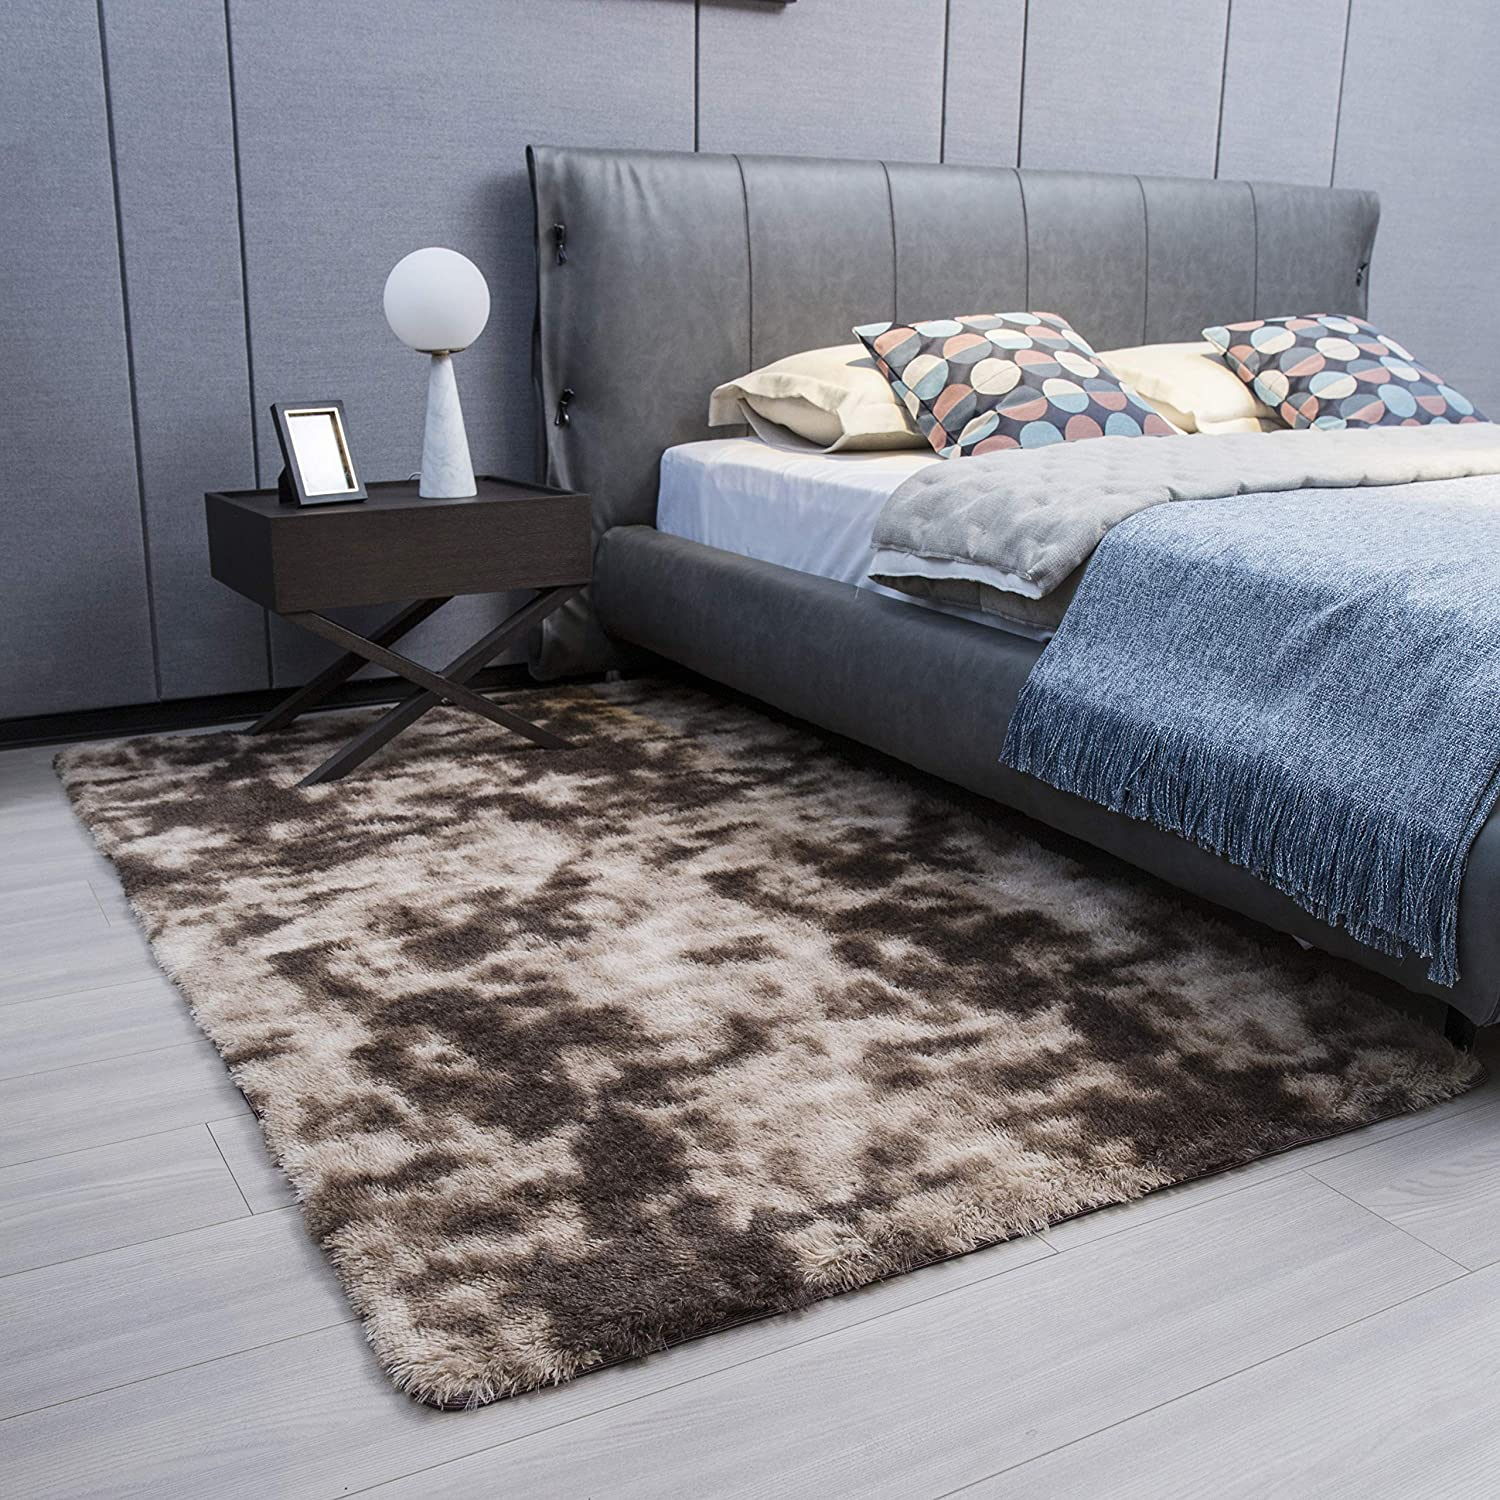 Sinofarms Super Soft Brown Area All Credence stores are sold Rug Living Rugs for Fluffy Room